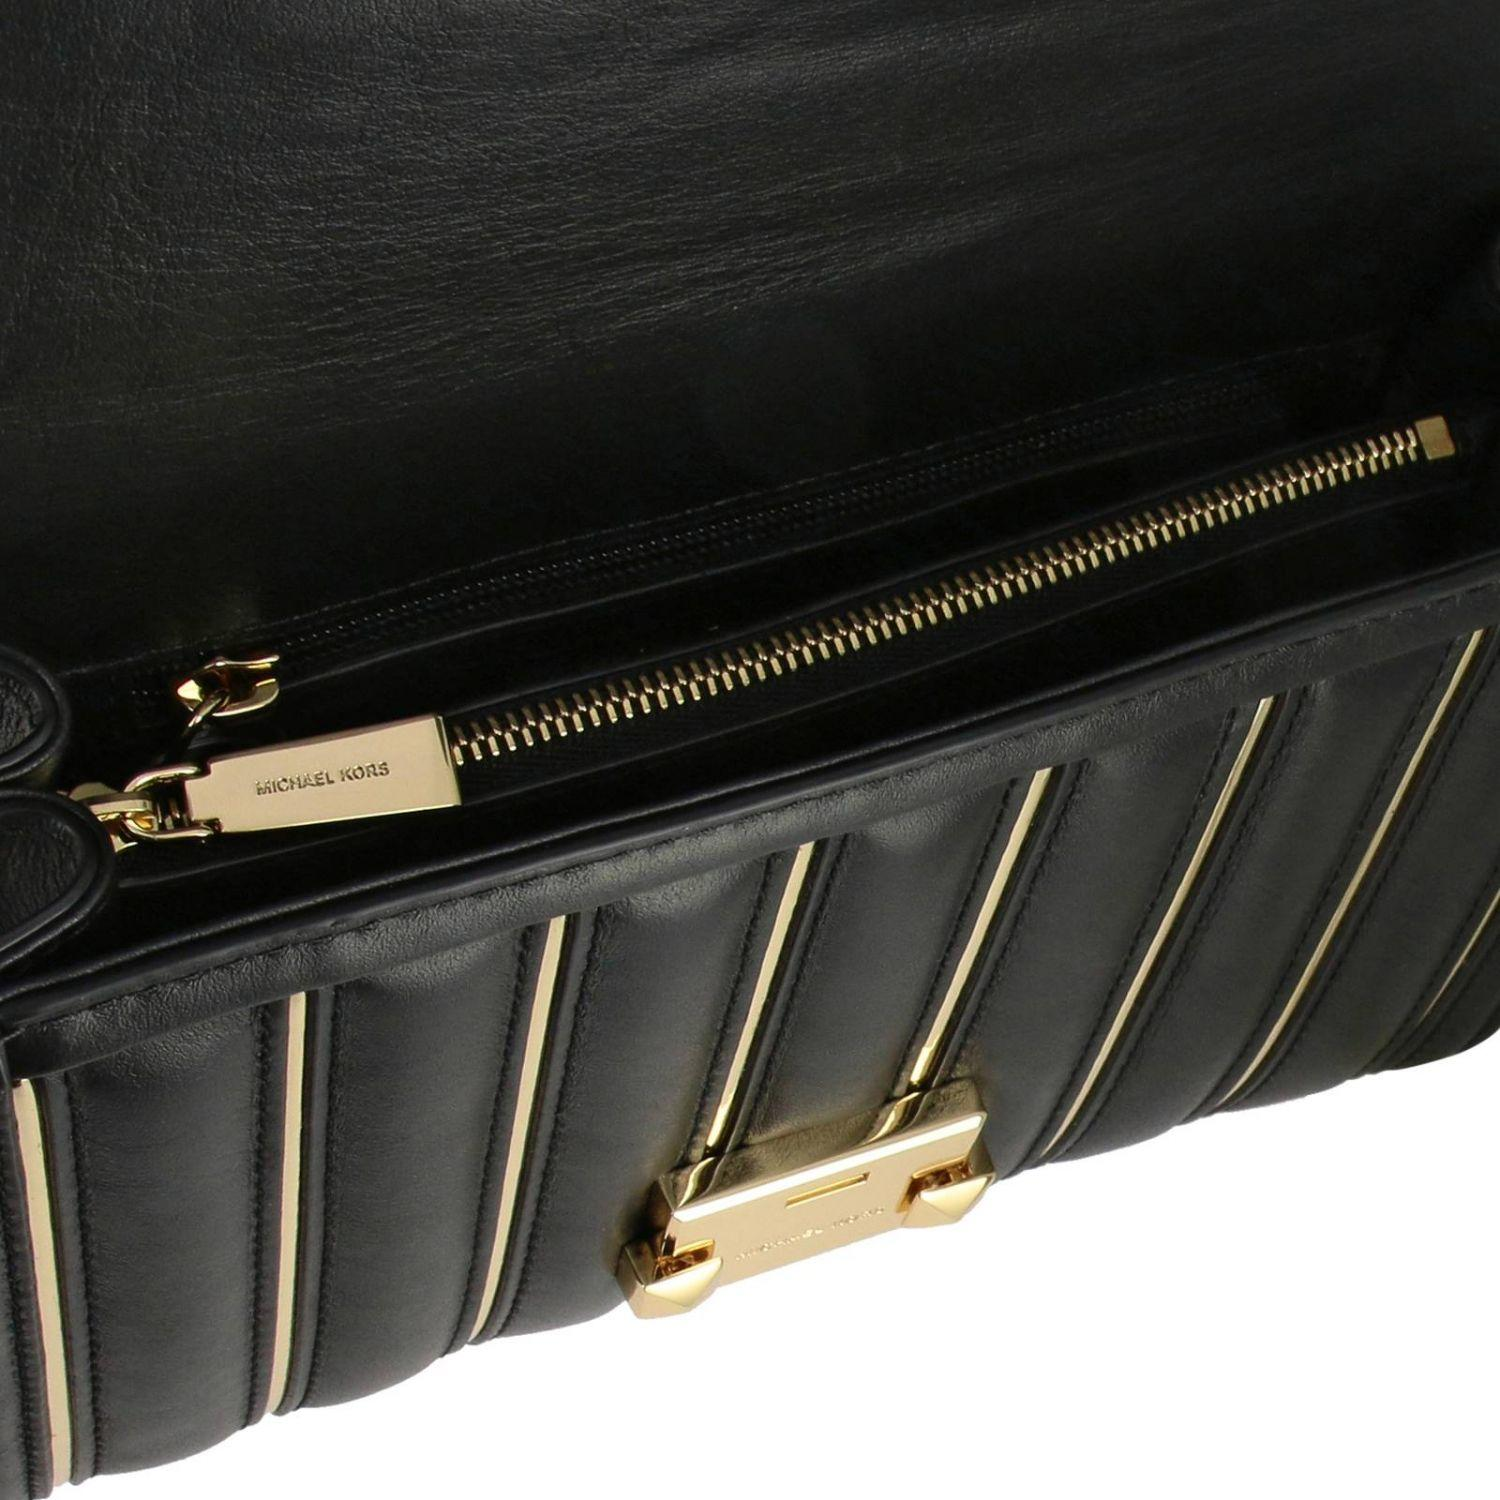 059cb7bc78a8 MICHAEL Michael Kors - Black Crossbody Bags Shoulder Bag Women - Lyst. View  fullscreen